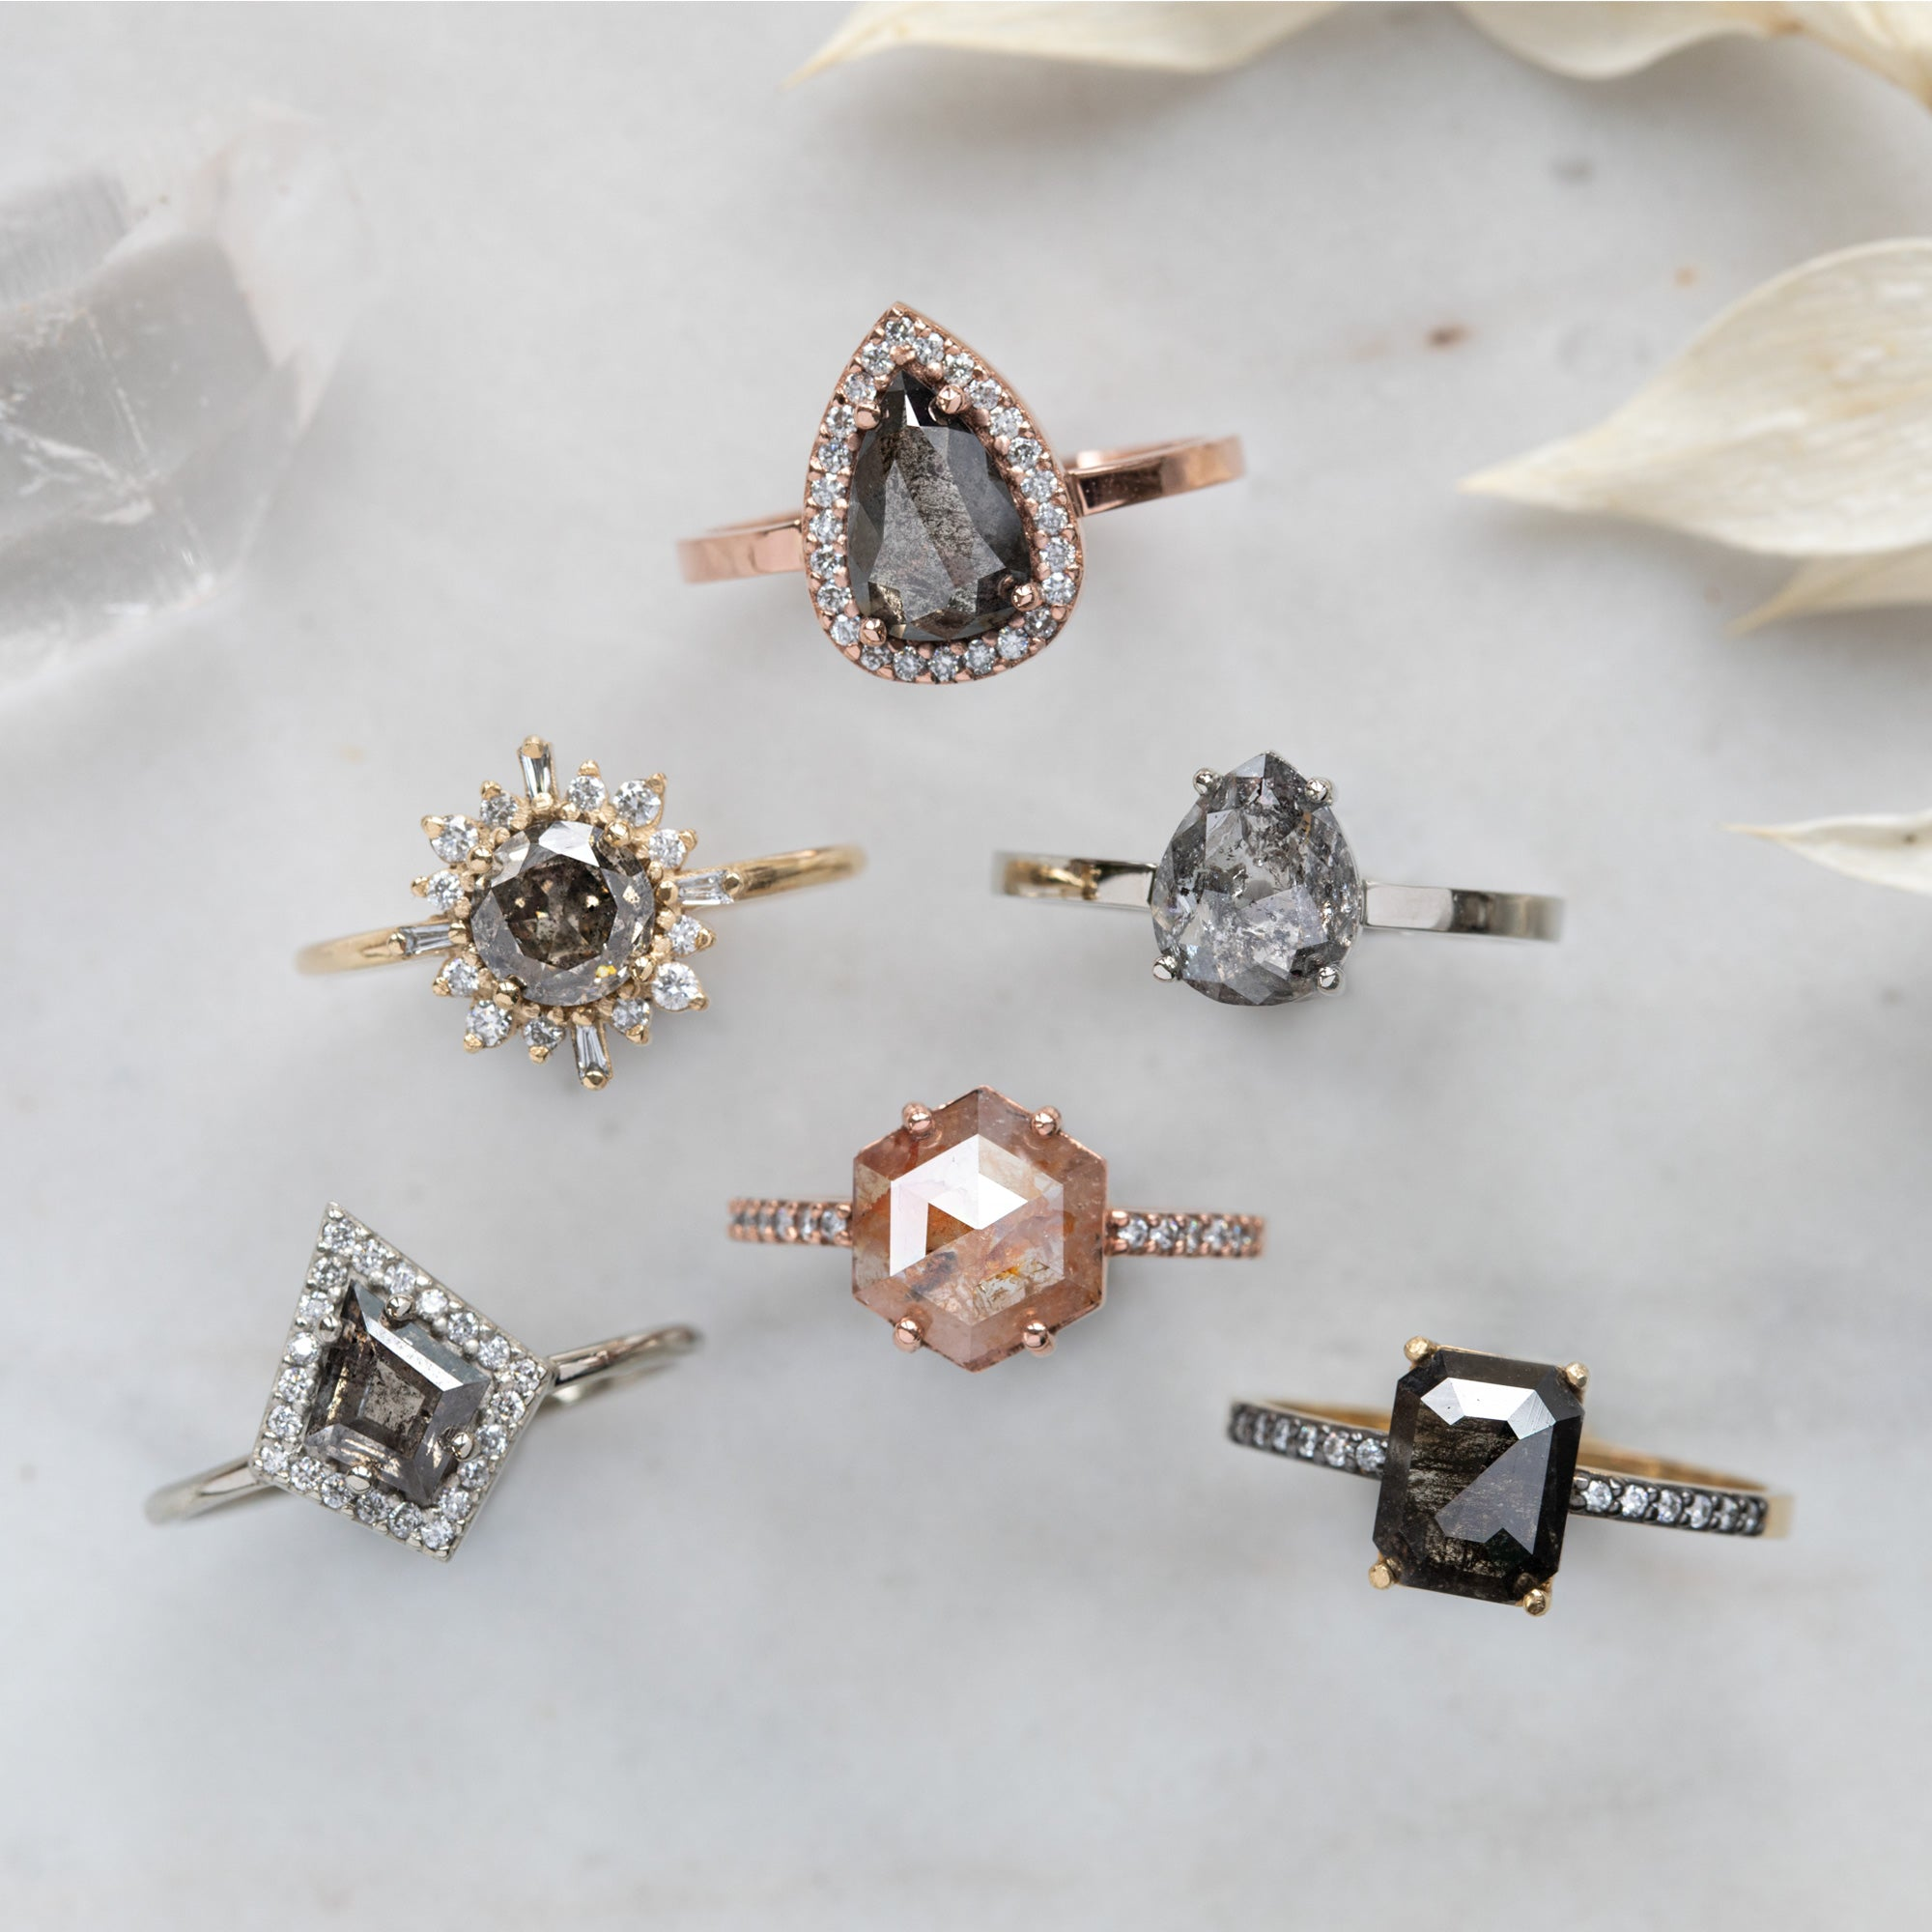 In Stock Engagement Rings Showing You All Available Metal Options